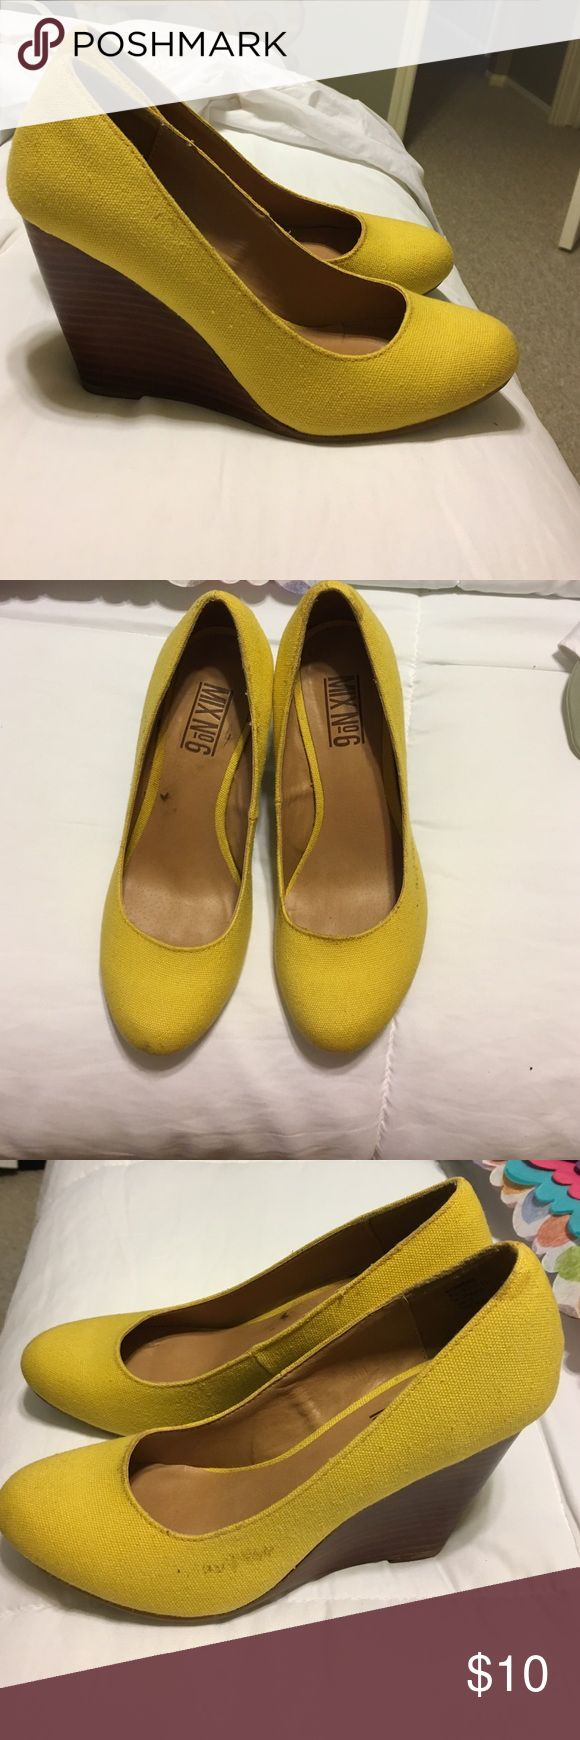 Yellow wedges Cute yellow wedges! Feel free to make an offer decent condition but has a little scuff as shown in picture! Shoes Wedges